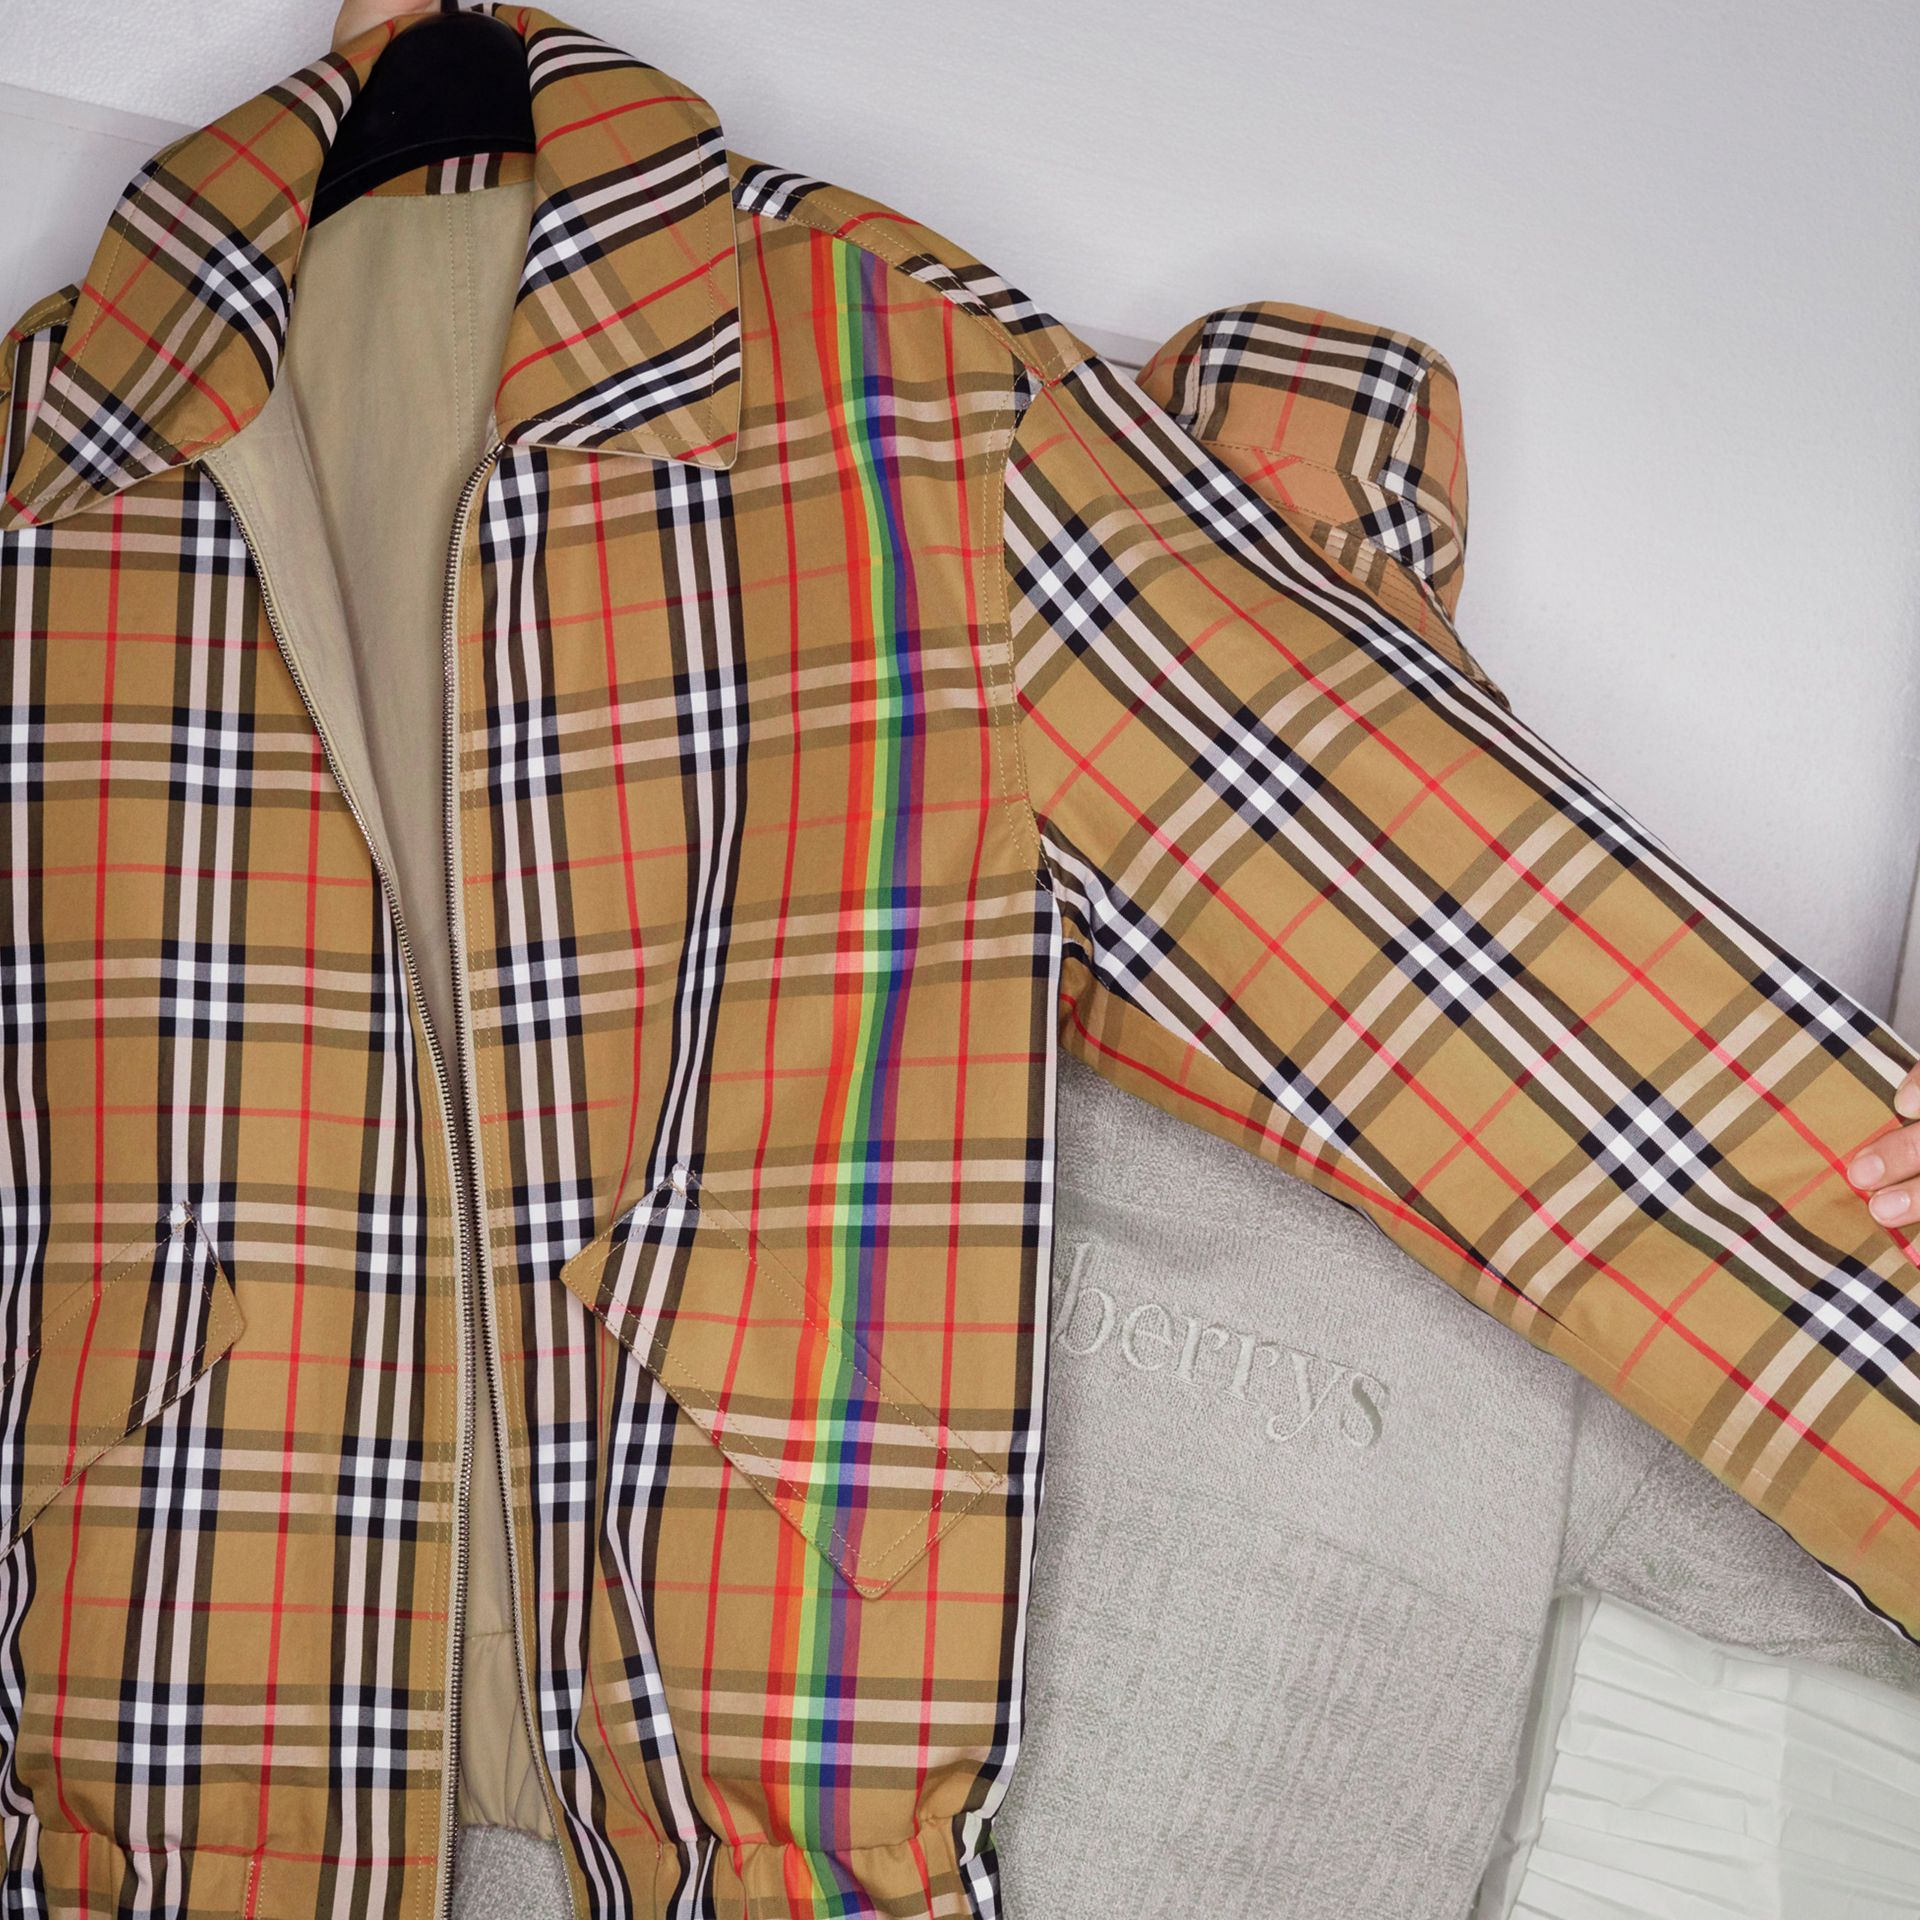 Veste Harrington à motif Rainbow Vintage check (Jaune Antique/arc-en-ciel) - Homme | Burberry - photo de la galerie 4